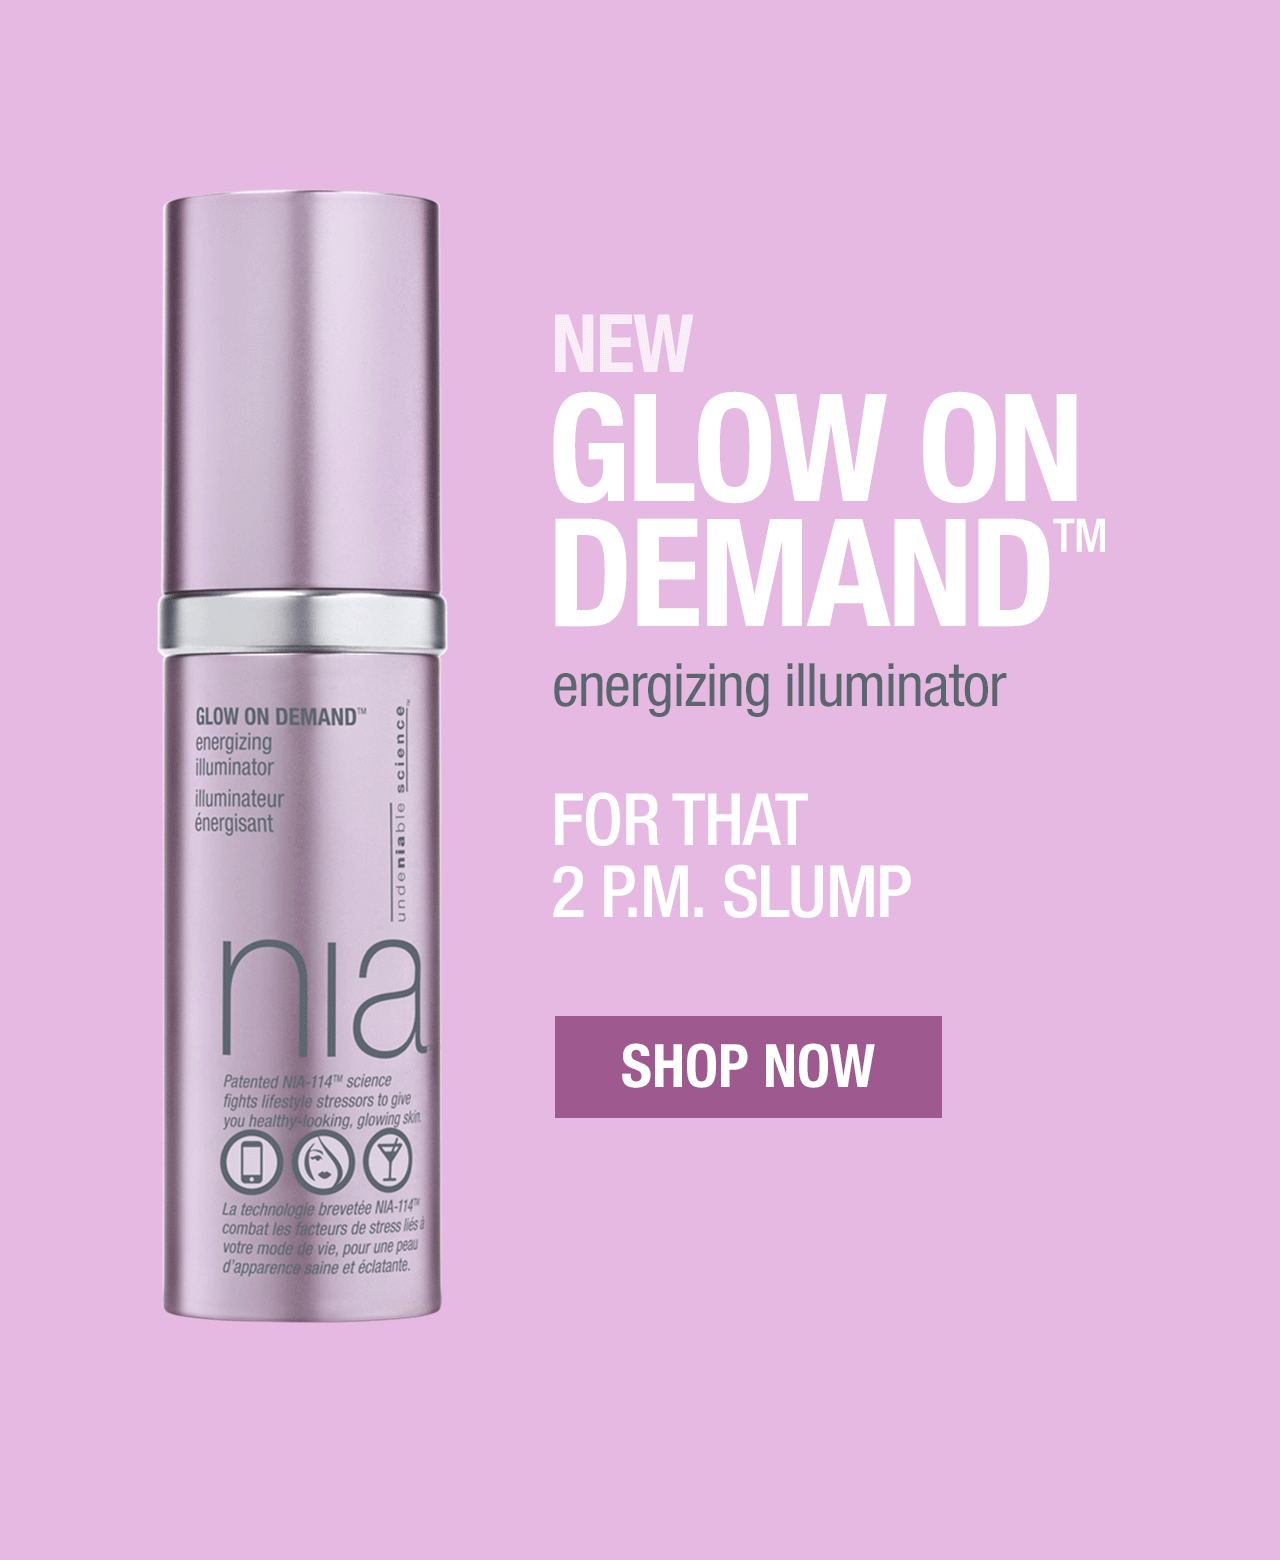 New glow on demand energizing illuminator